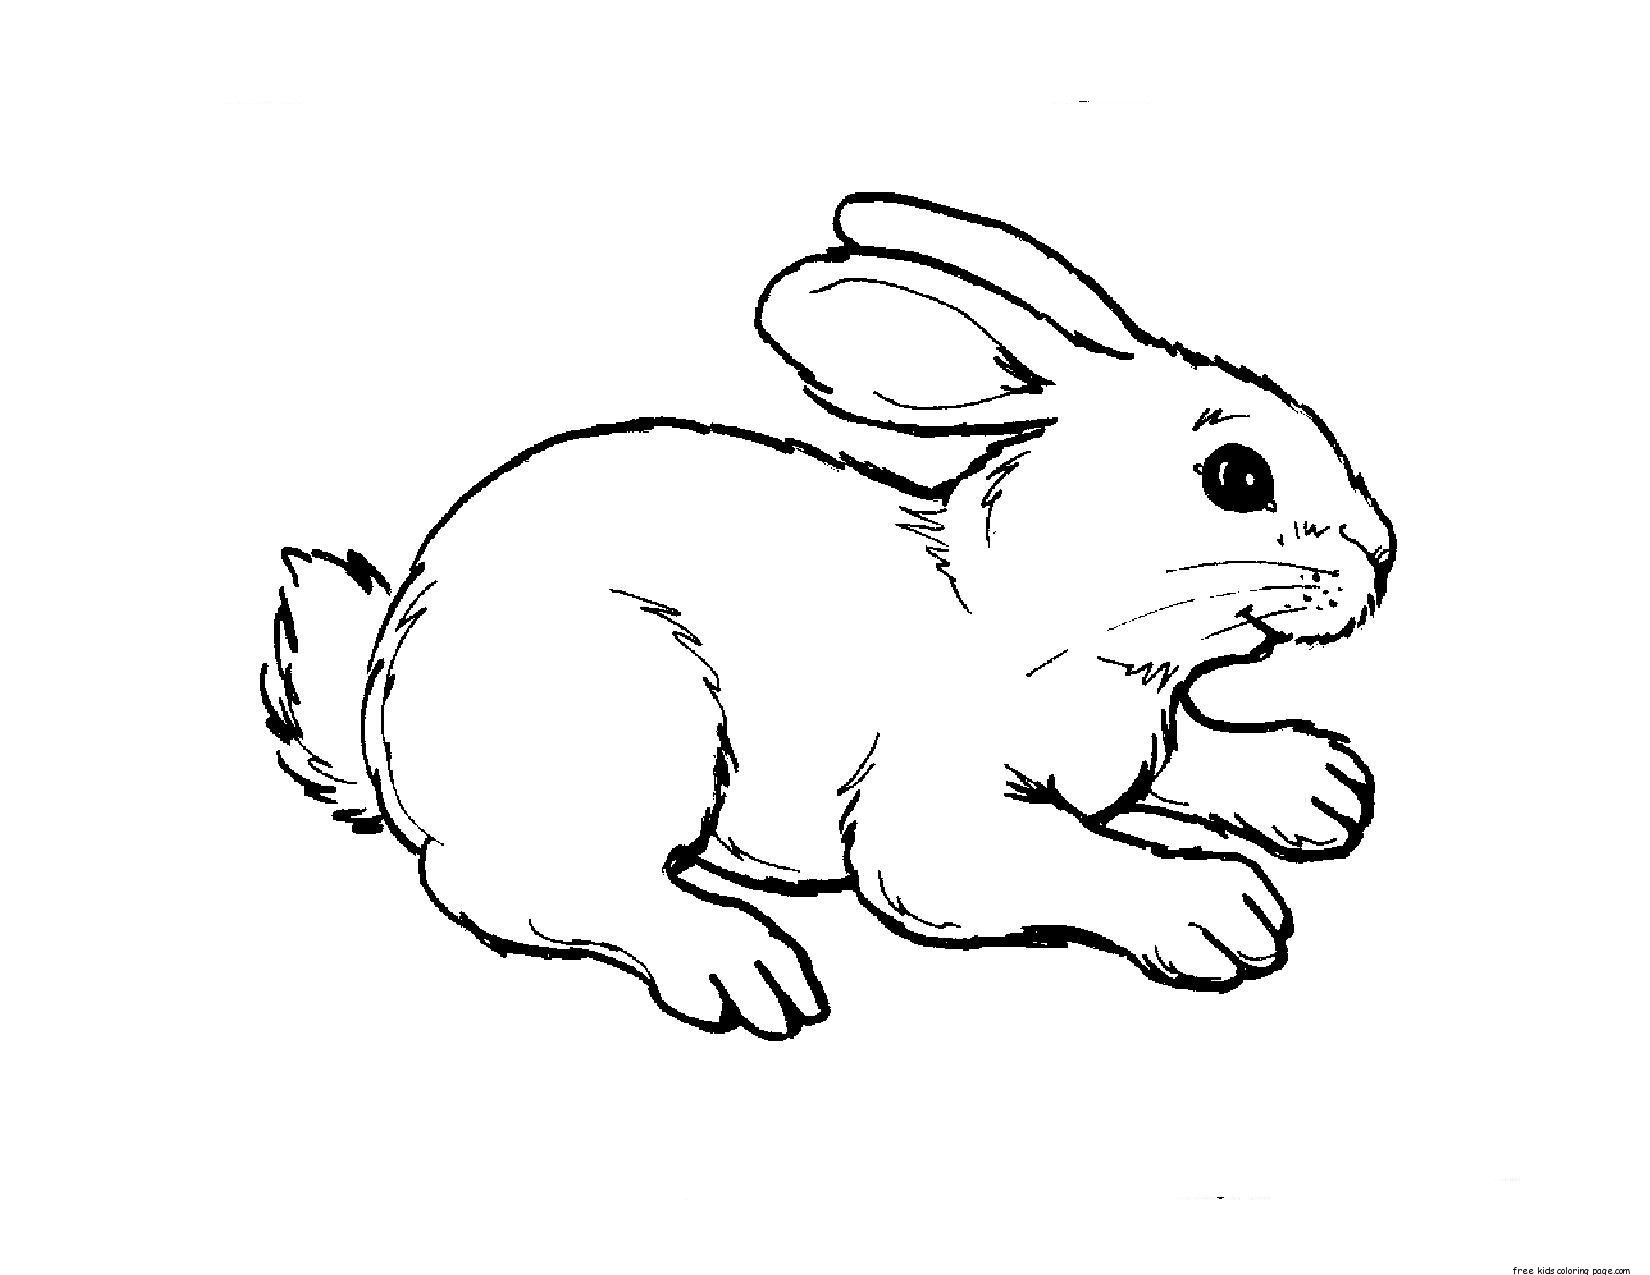 Free animals coloring pages for kids to print - Printable Kids Coloring Pages Animal Rabbit Free Printable Coloring Pages For Kids